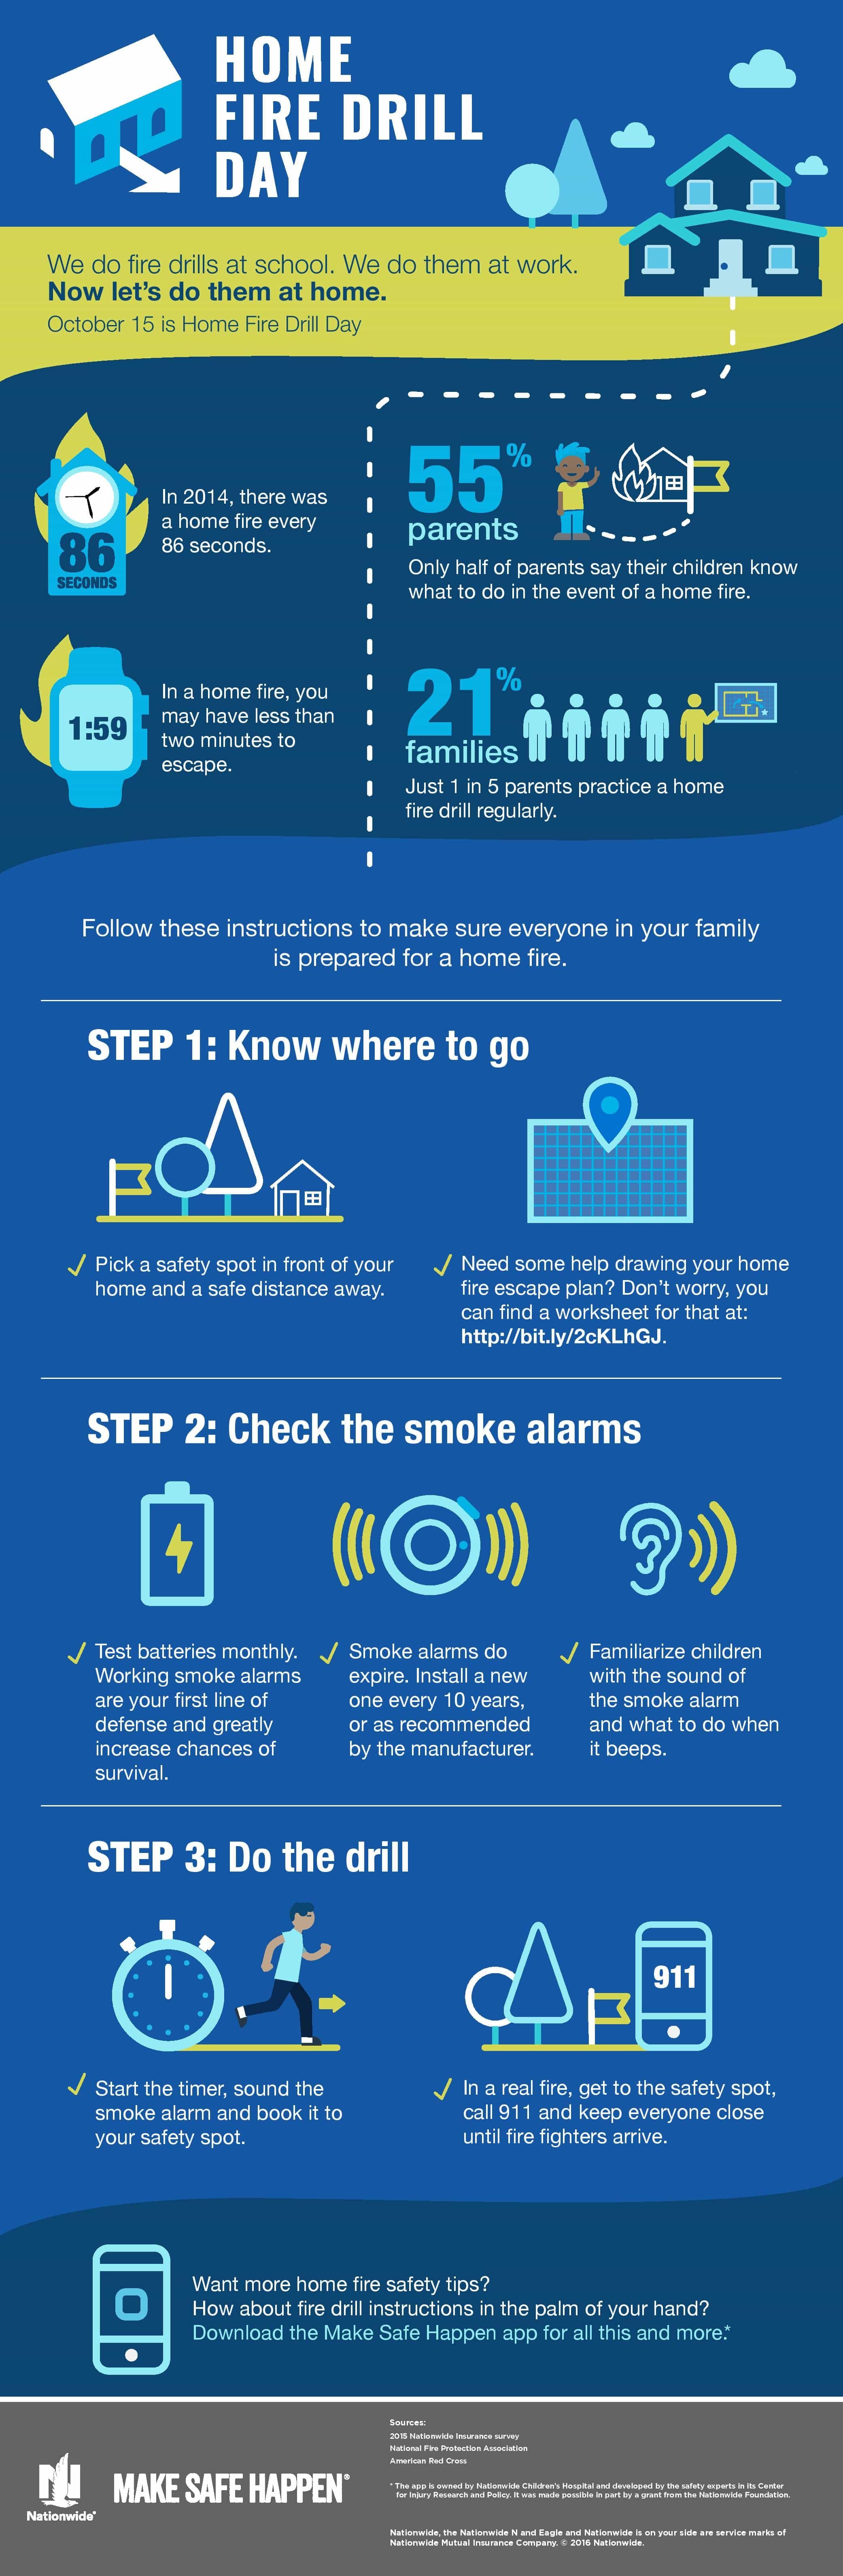 home-fire-drill-day-infographic-final-page-001